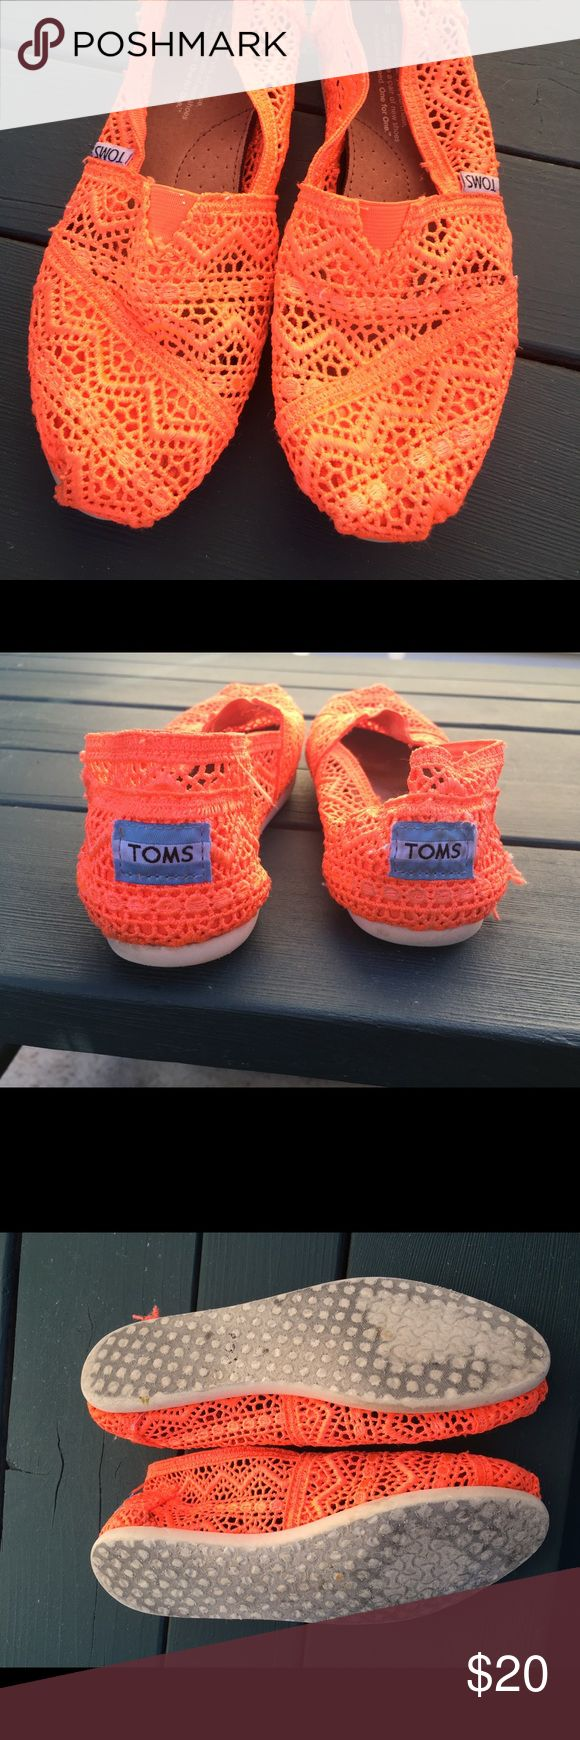 Orange lace Toms Lightly worn orange lace Toms. Size 6 Toms Shoes Flats & Loafers